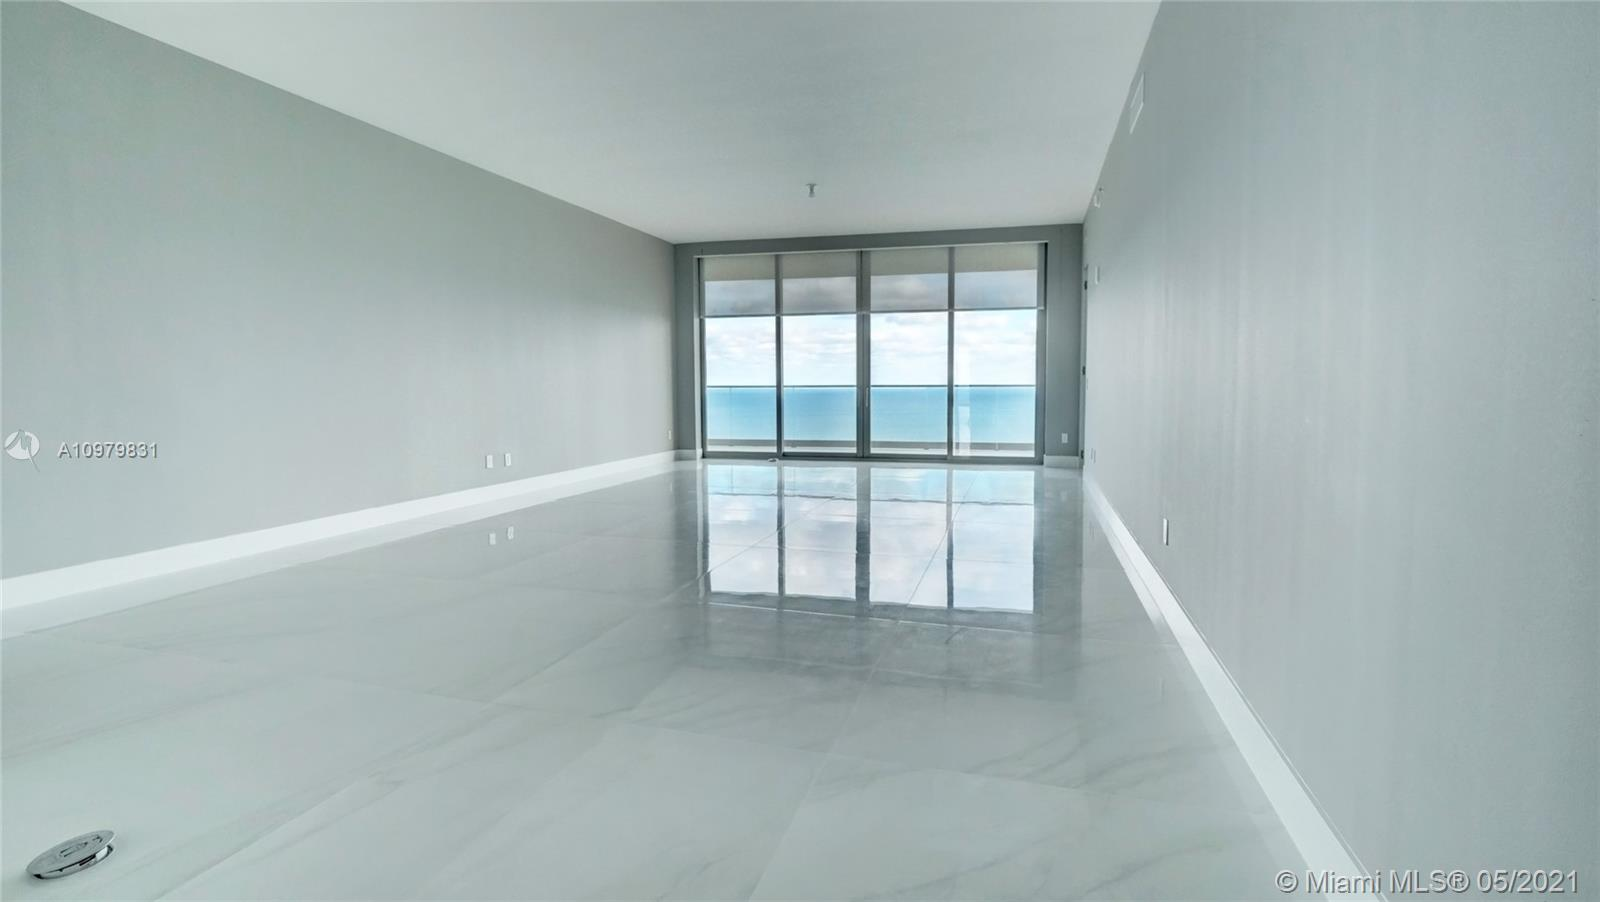 Armani Casa Tower #4001 - 18975 Collins Ave #4001, Sunny Isles Beach, FL 33160